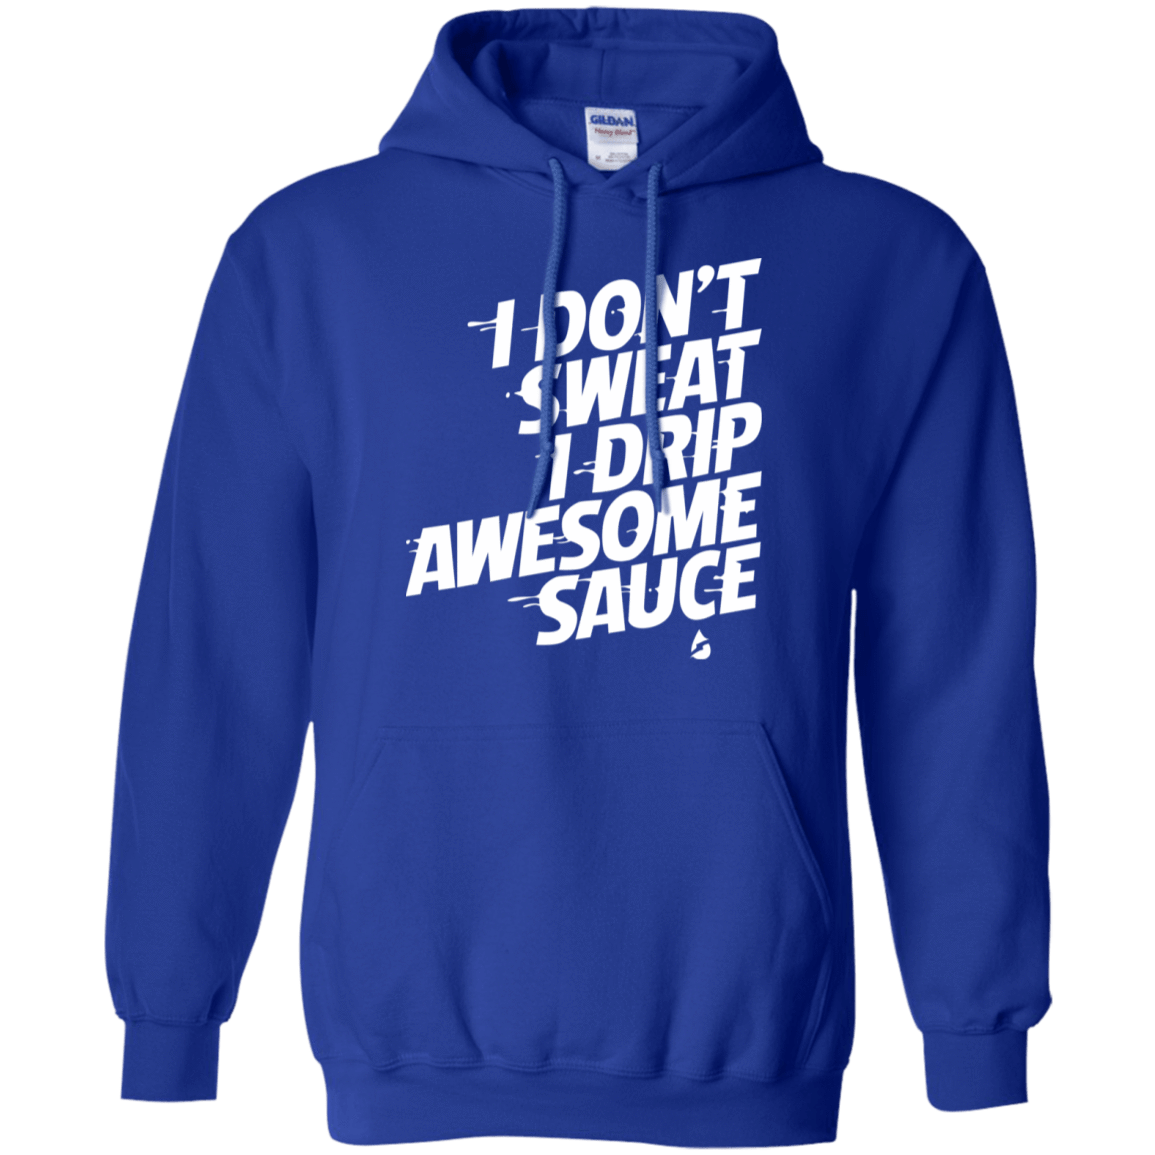 I Don't Sweat I Drip Awesome Sauce 541-4765-72789581-23175 - Tee Ript